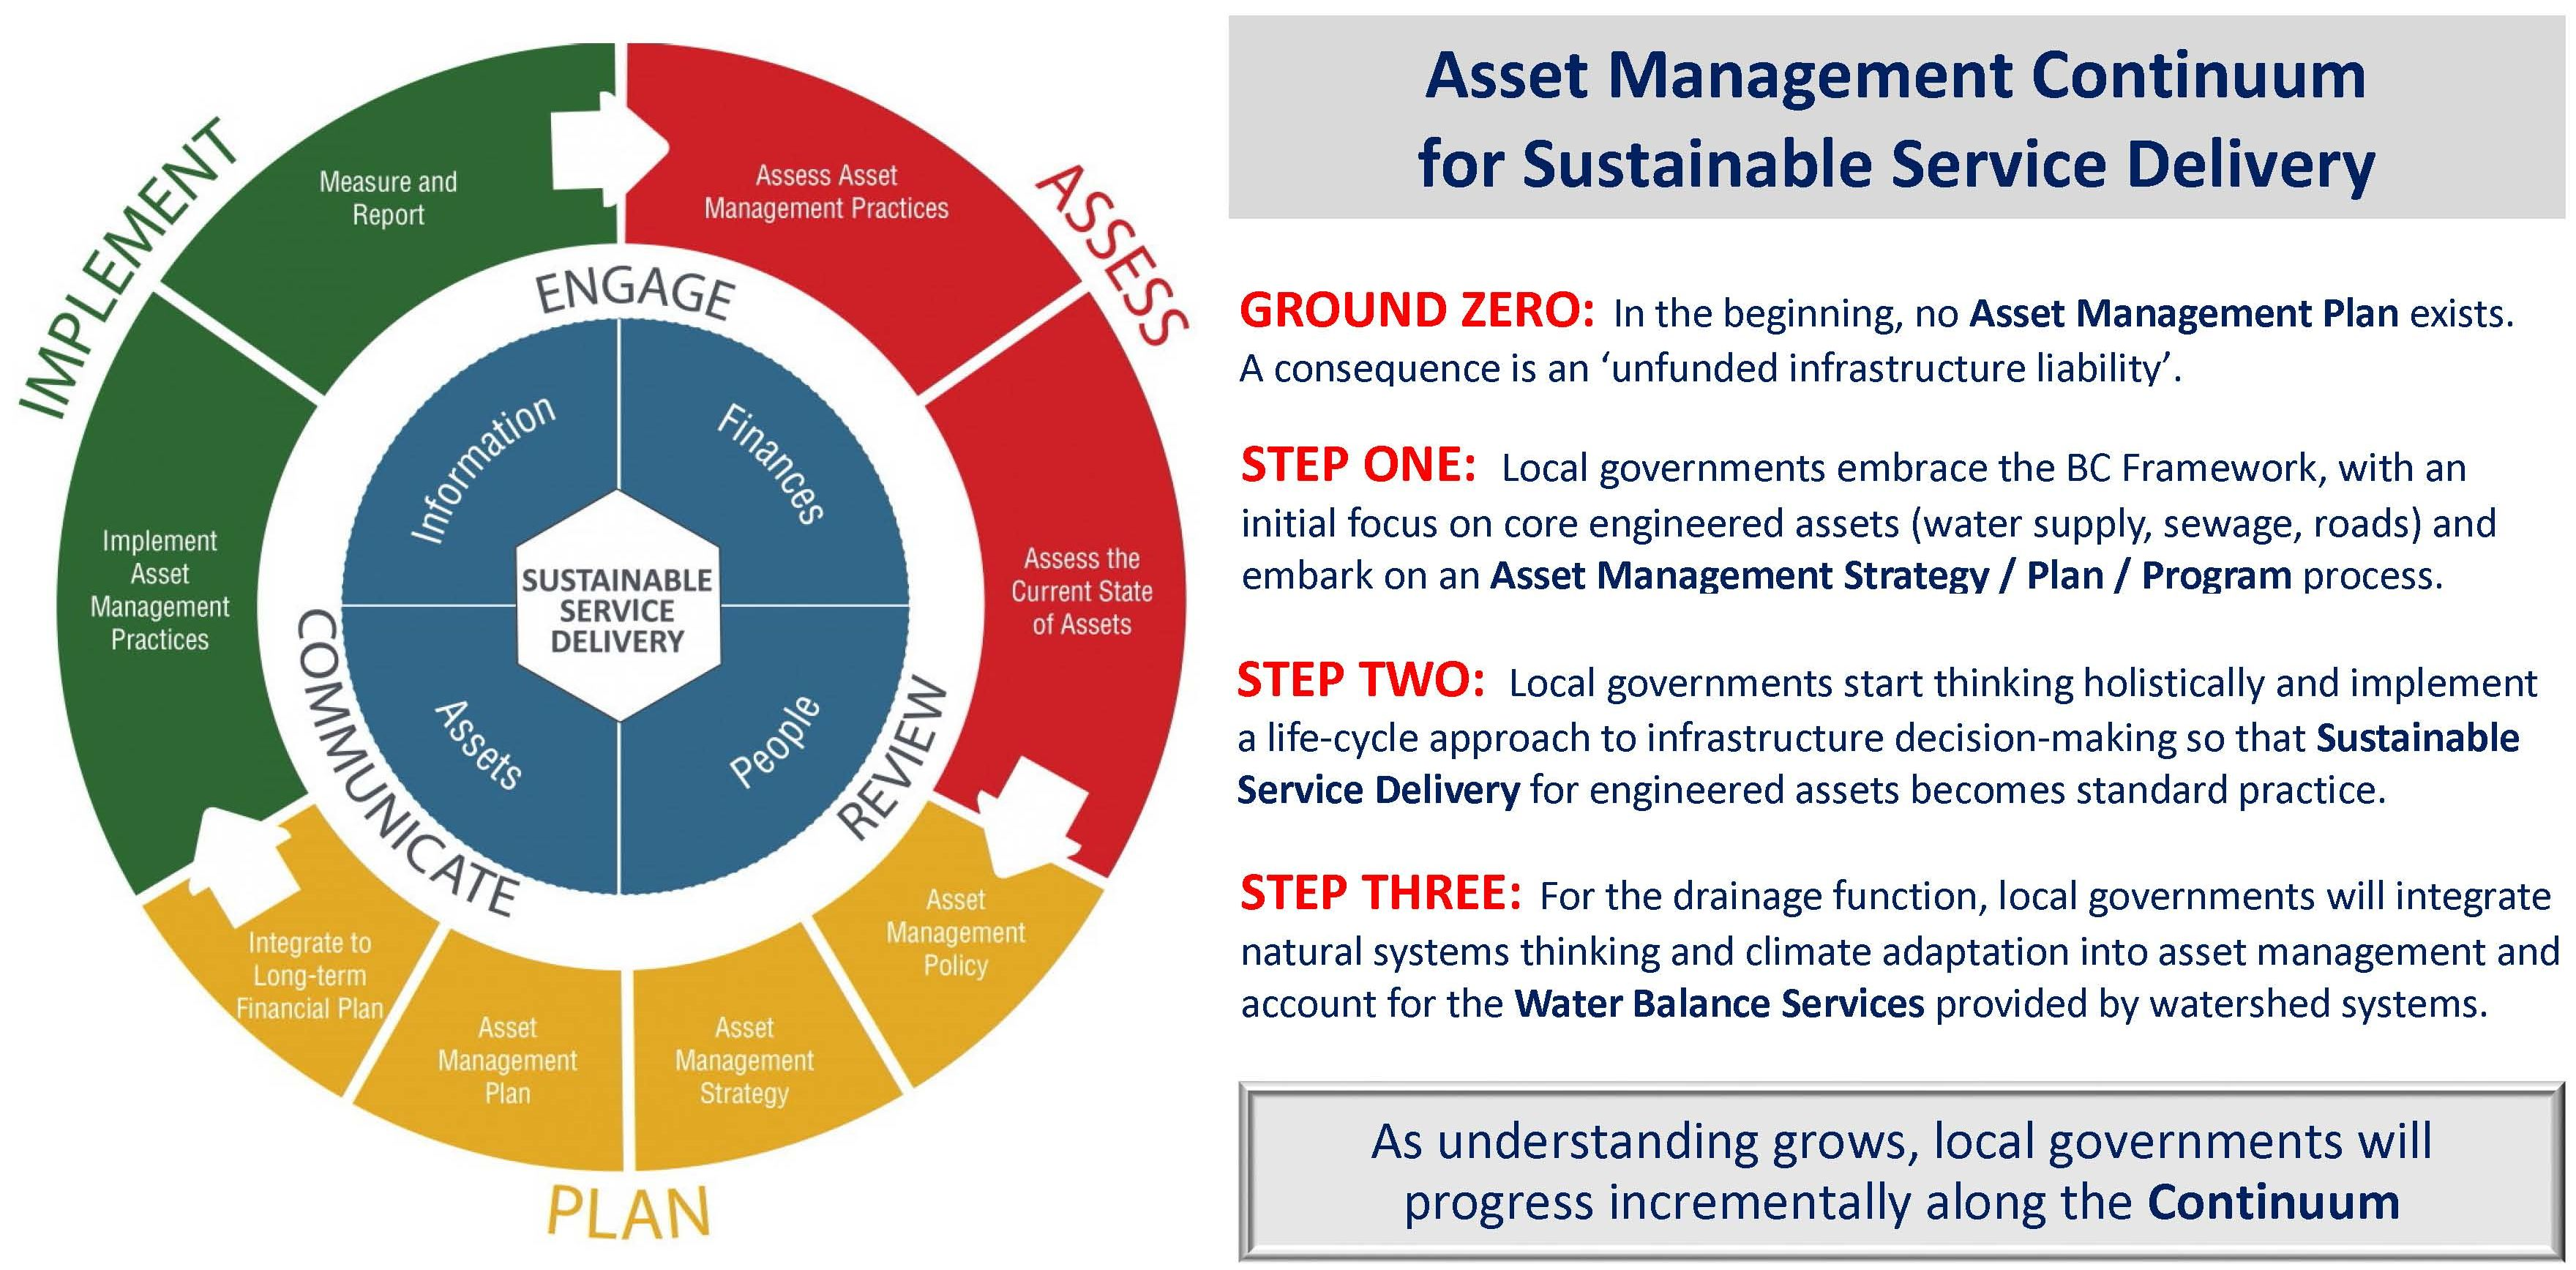 Asset Mgmt Continuum_v2_Nov2016